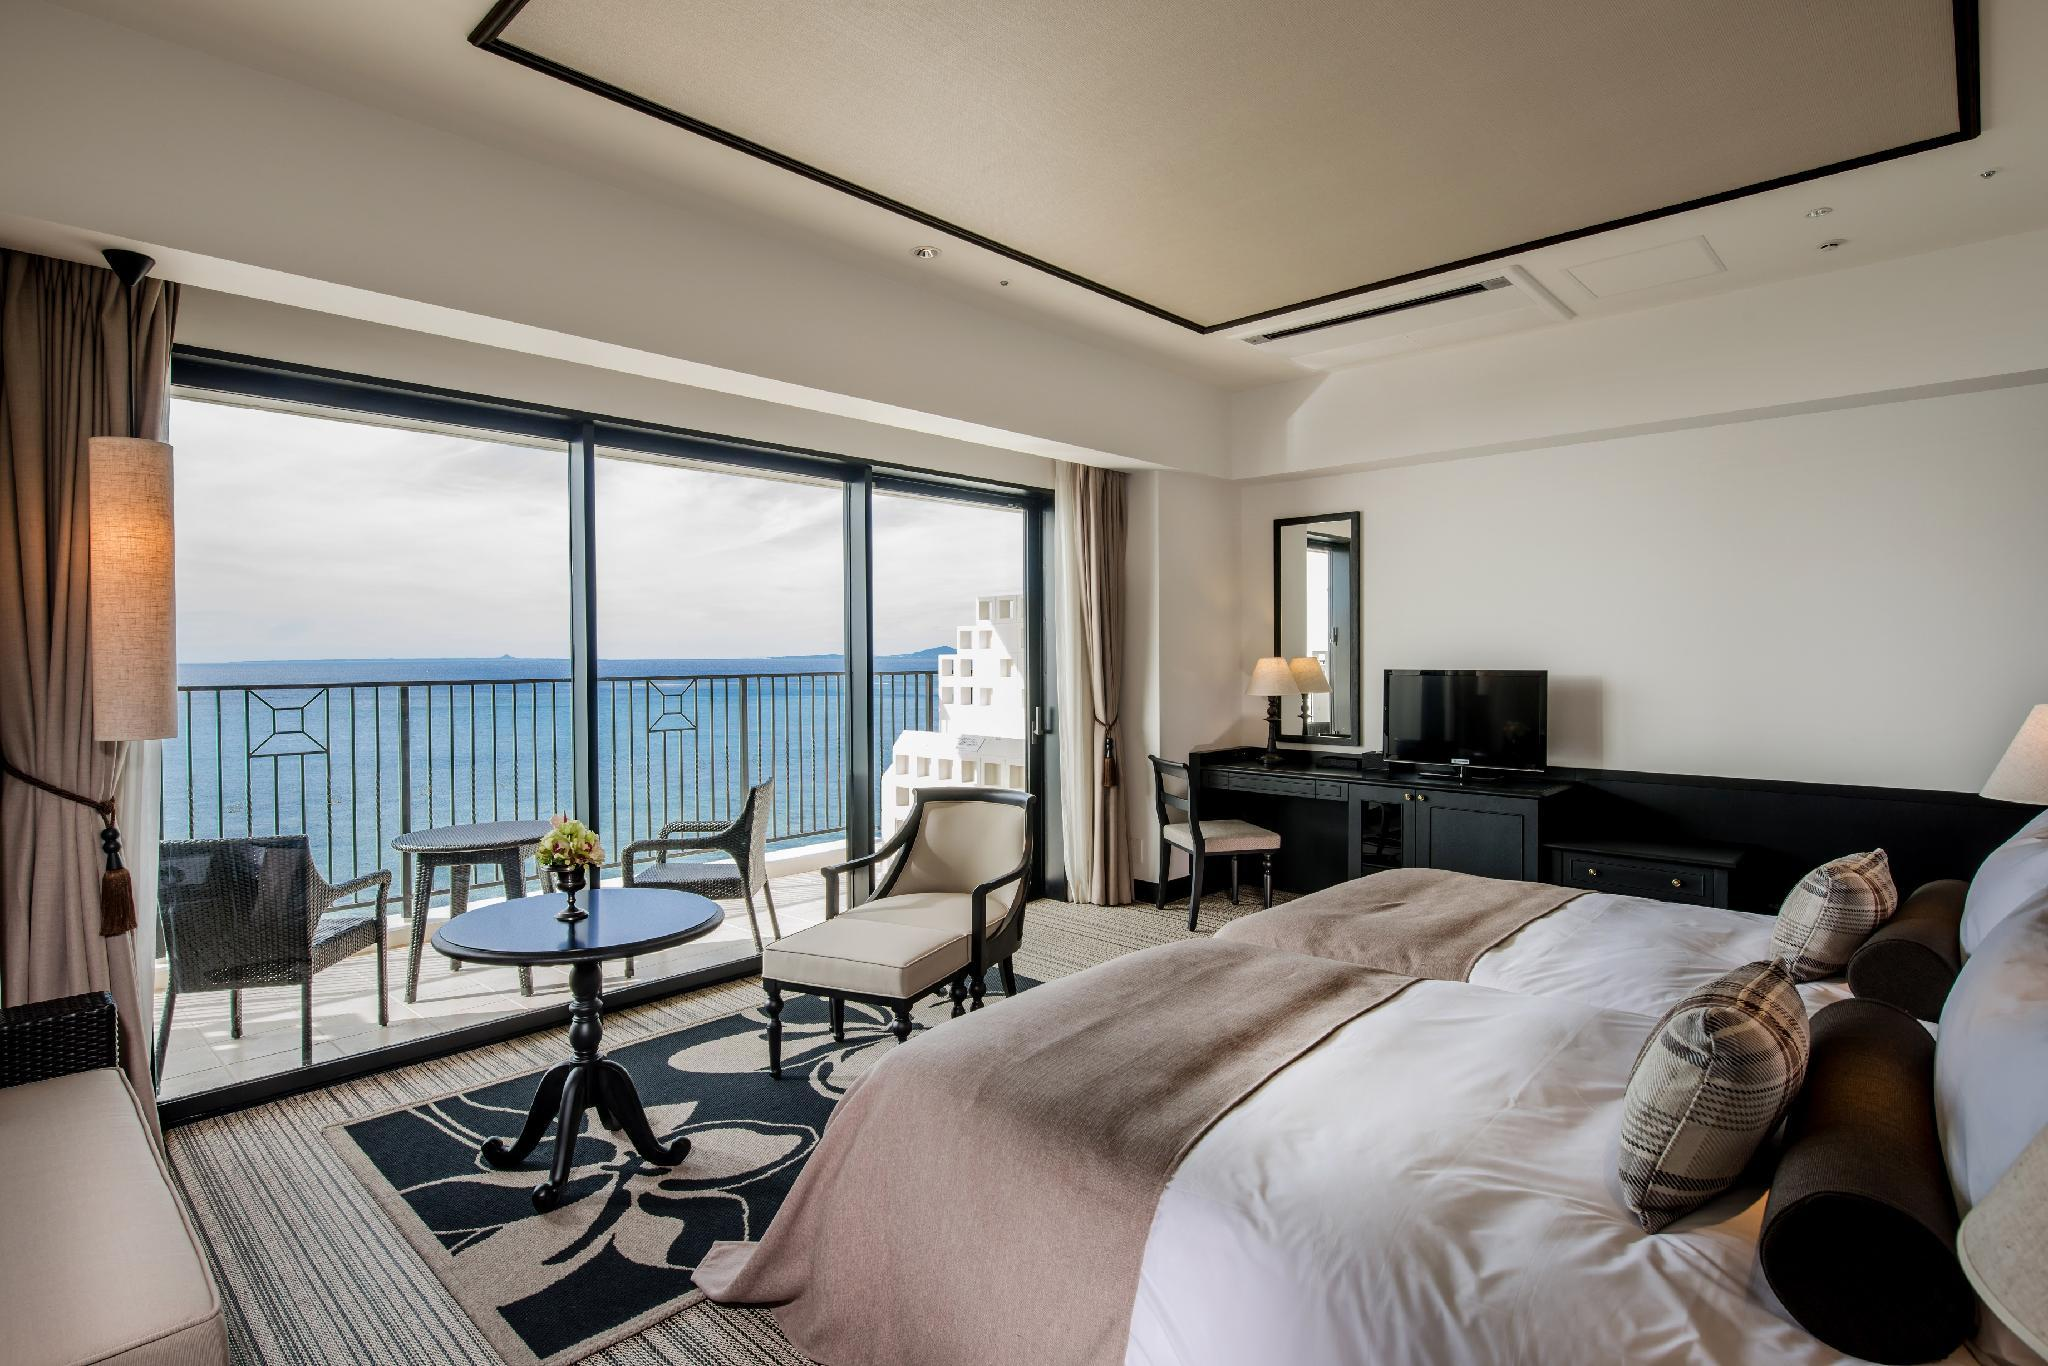 Deluxe Ocean View Hollywood Twin Room for 4 People